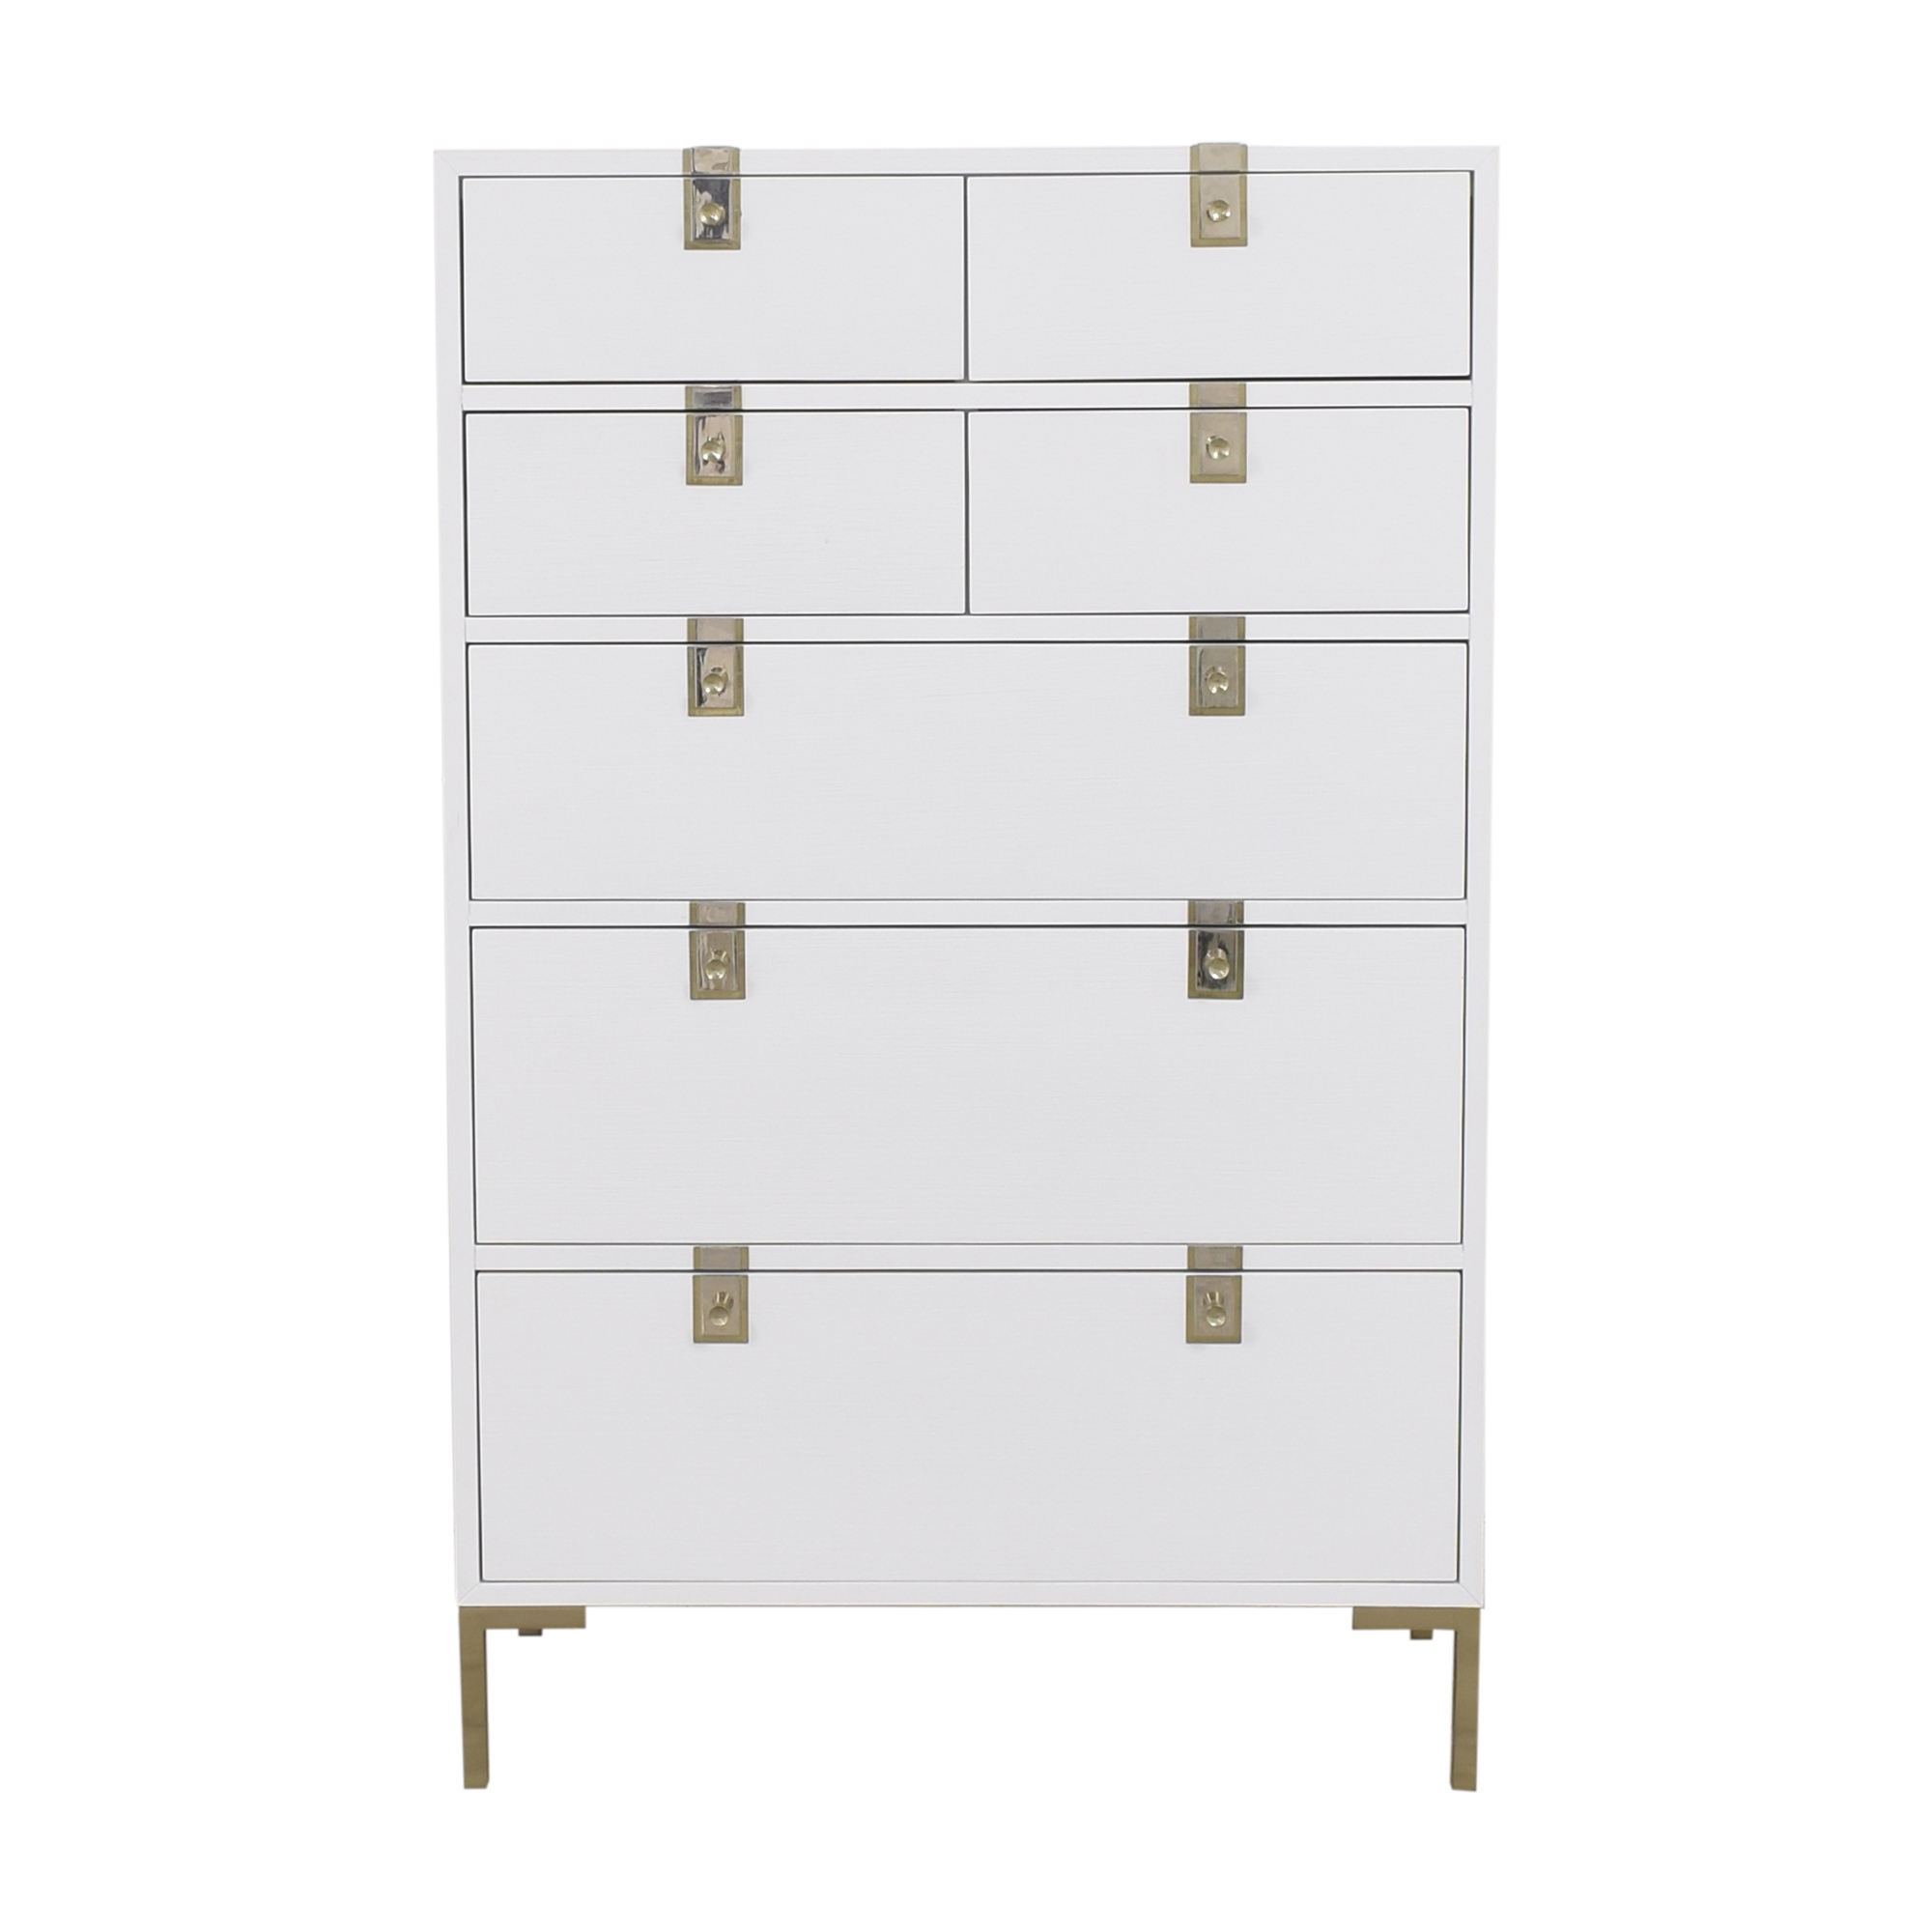 Anthropologie Anthropologie Ingram Seven Drawer Dresser dimensions